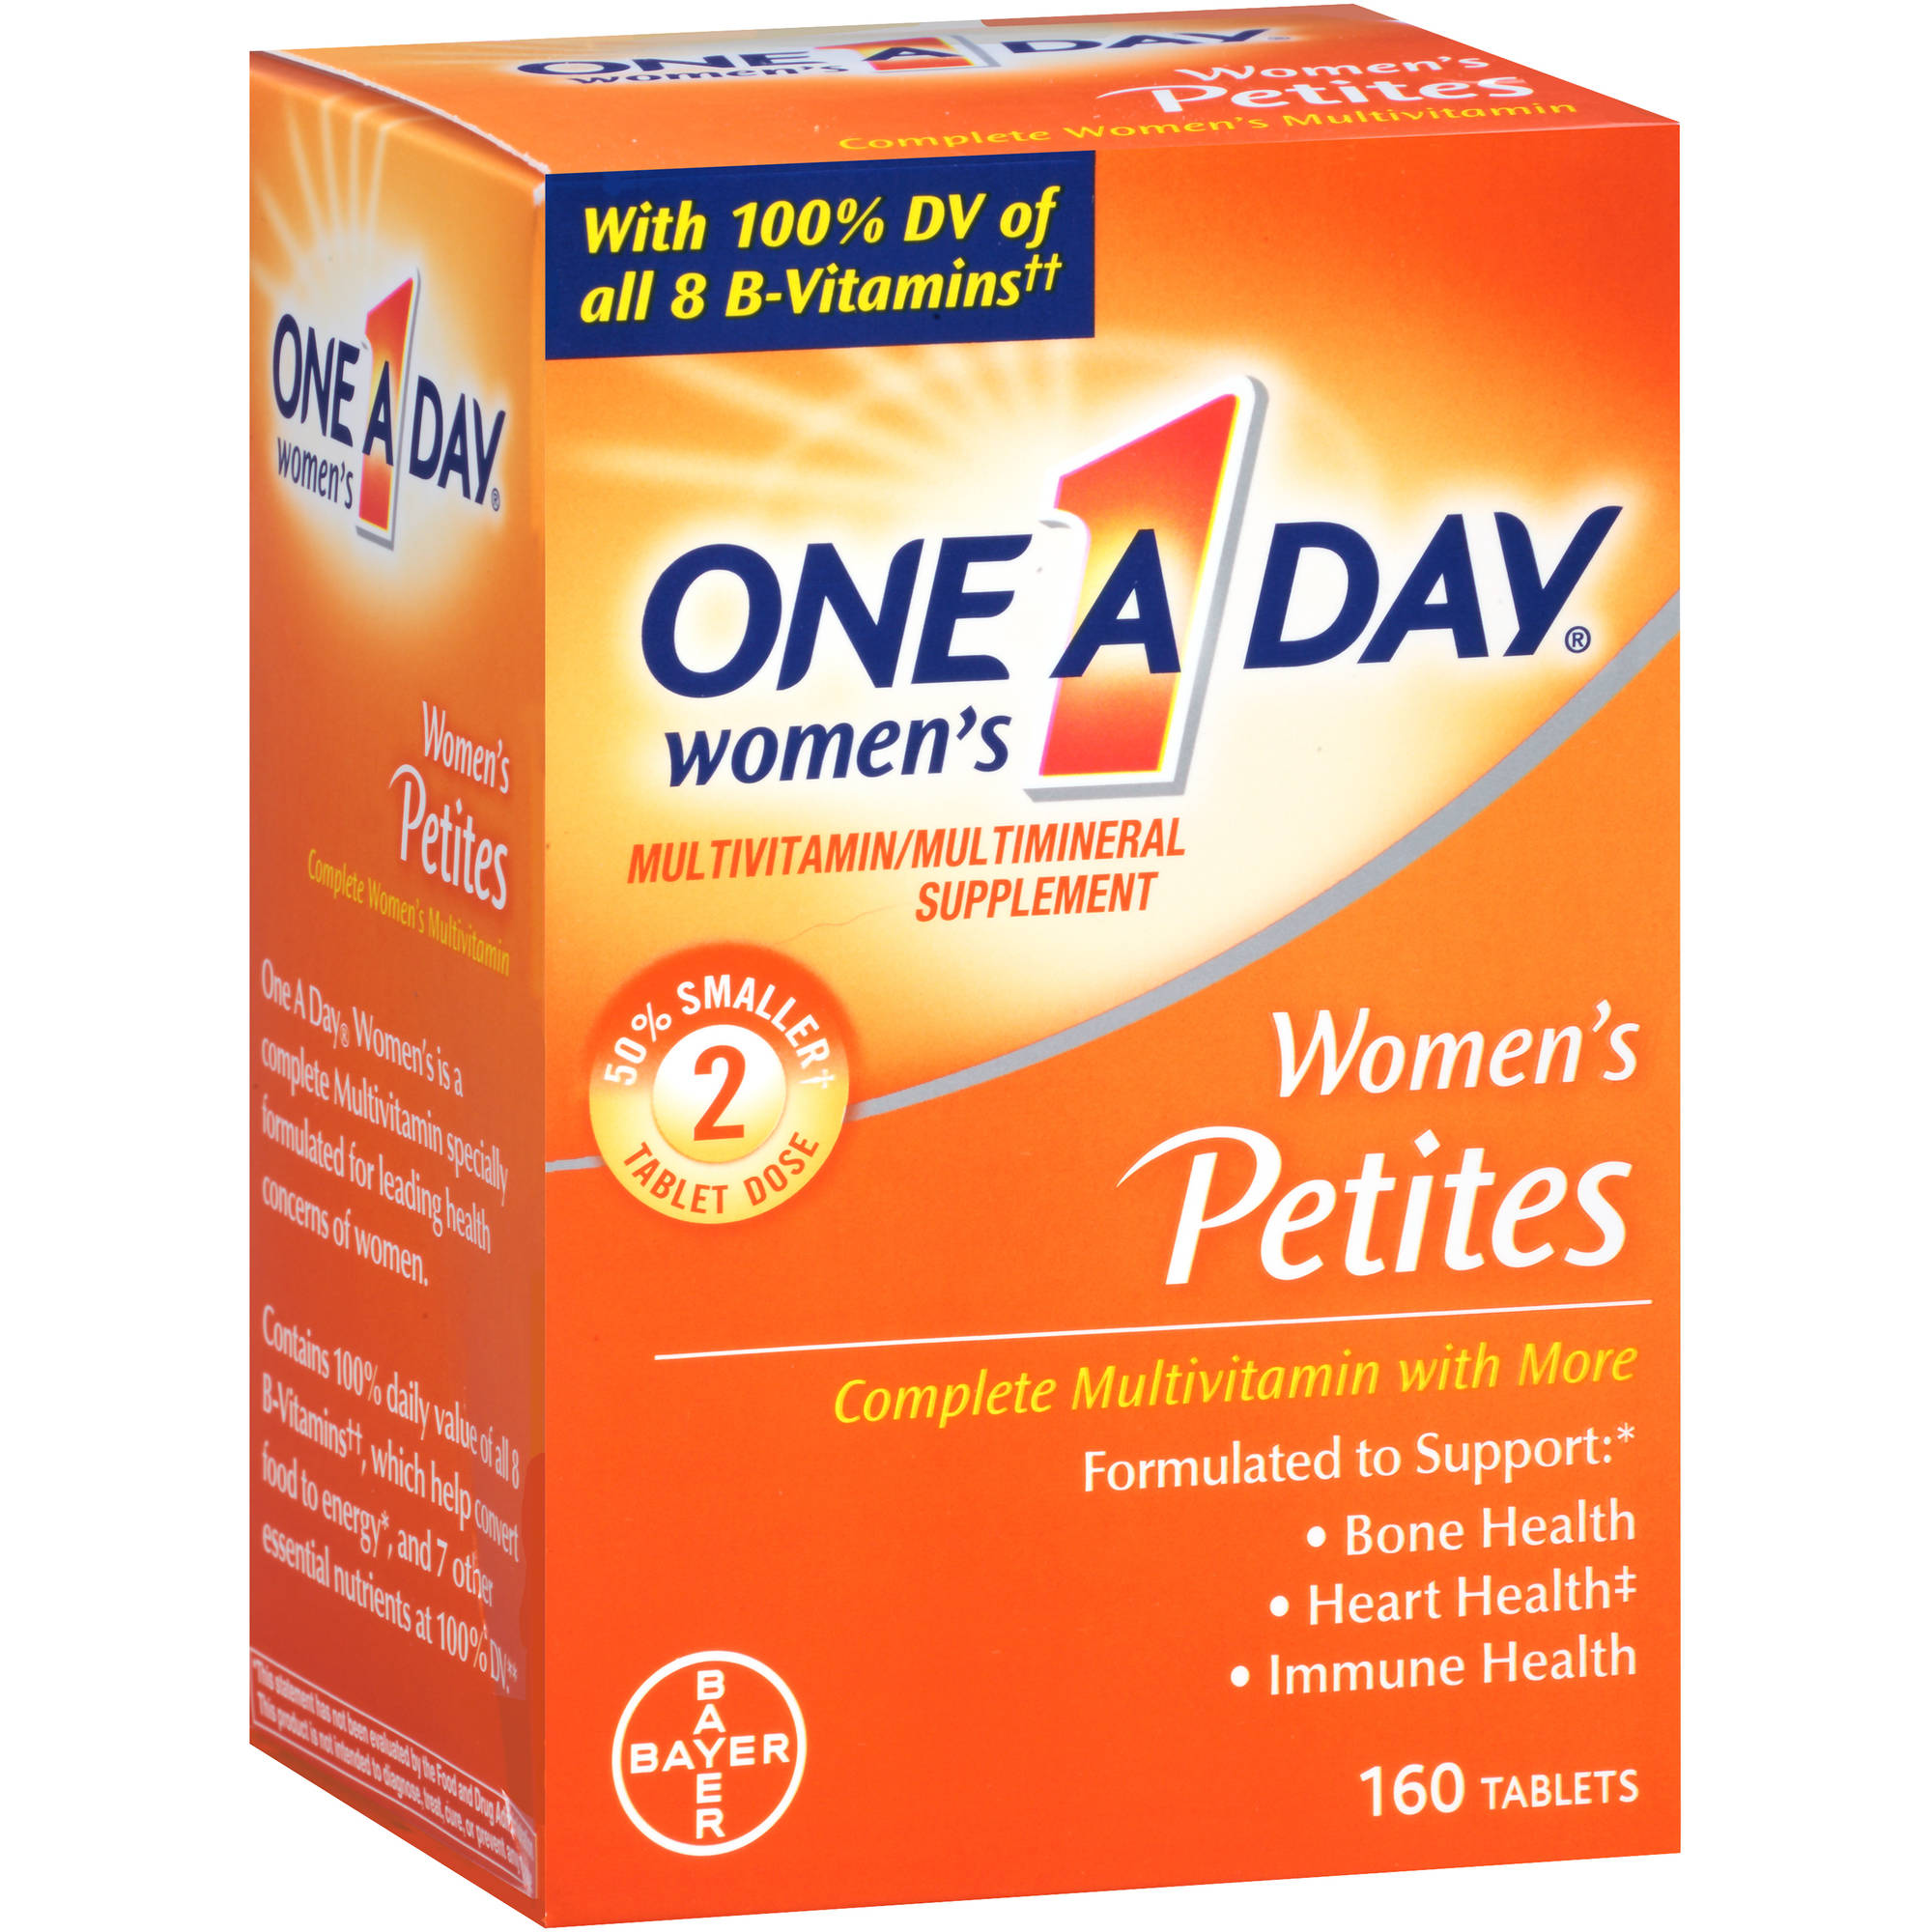 One A Day Women's Petites Multivitamin/Multimineral Supplement, 160 count